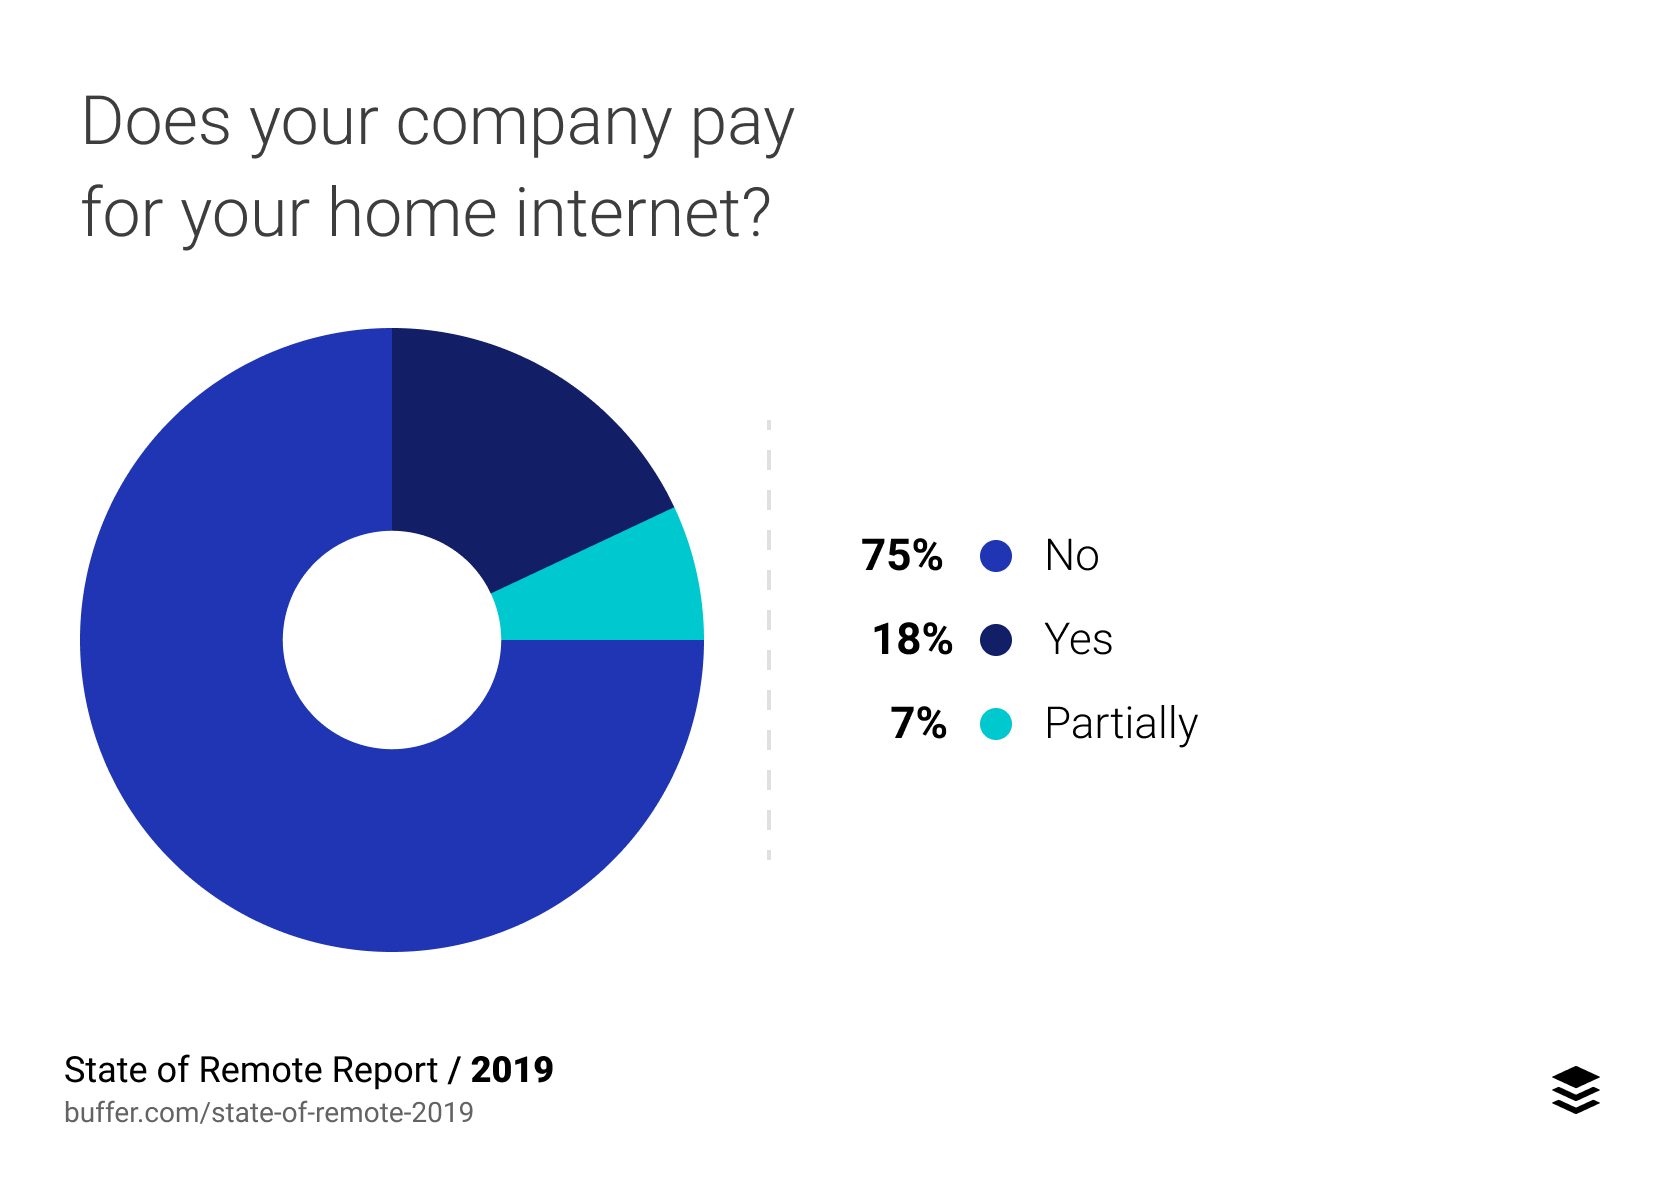 Does your company pay for your home internet?